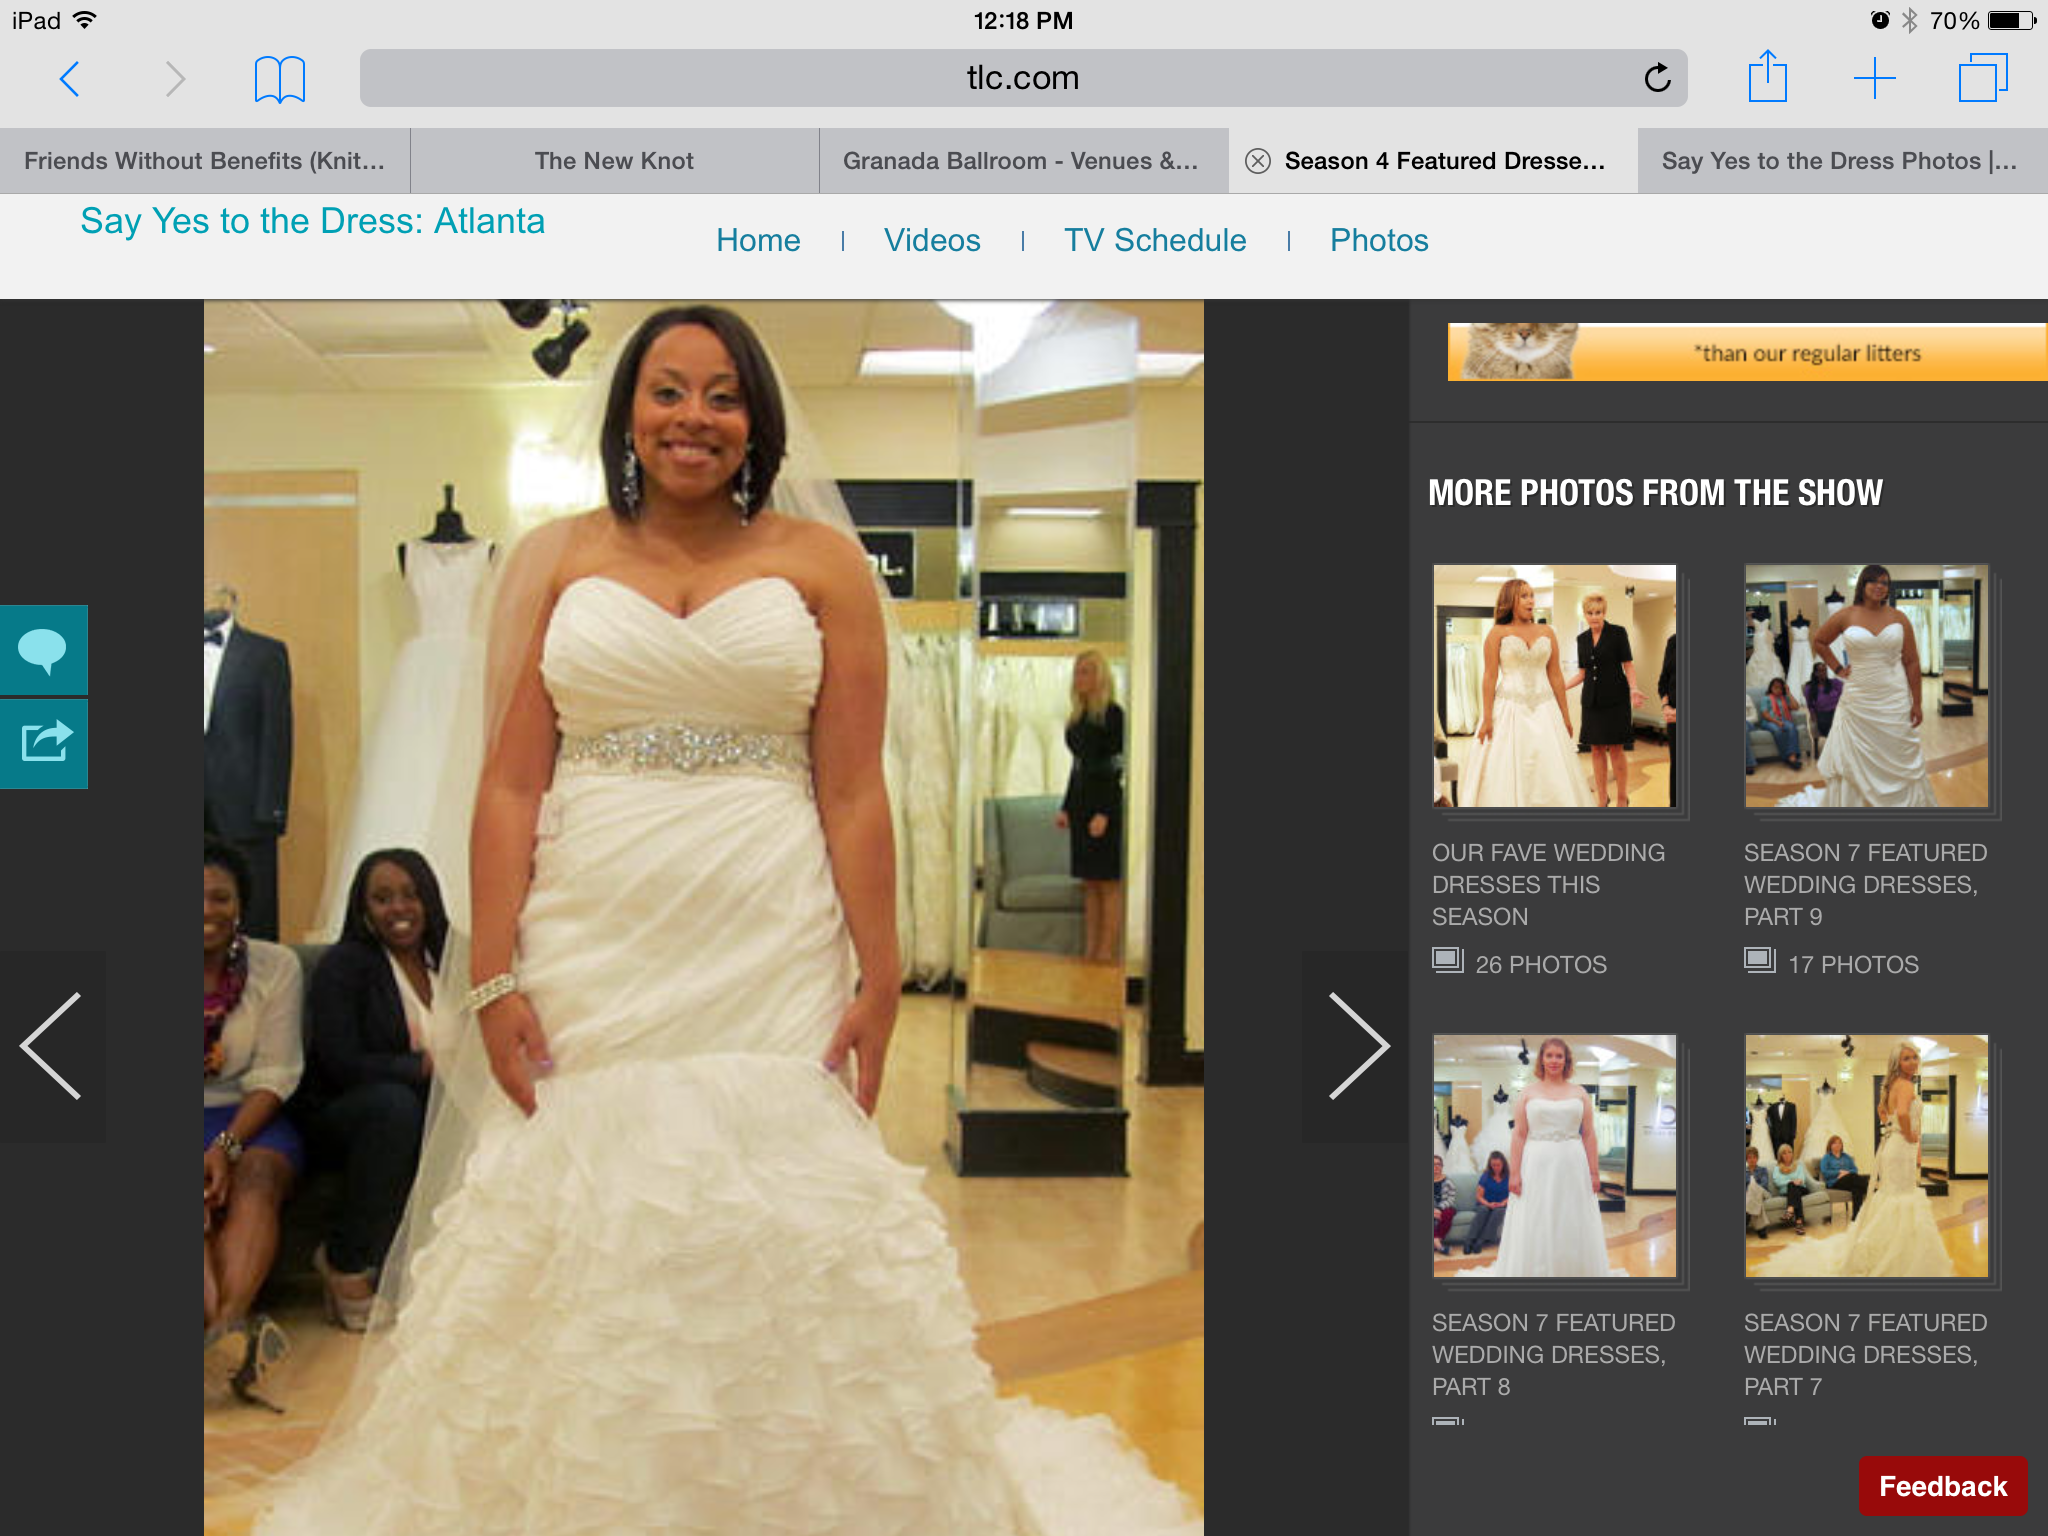 Best wedding dress for size 20  Pin by Chandra Peterson on Wedding ideas  Pinterest